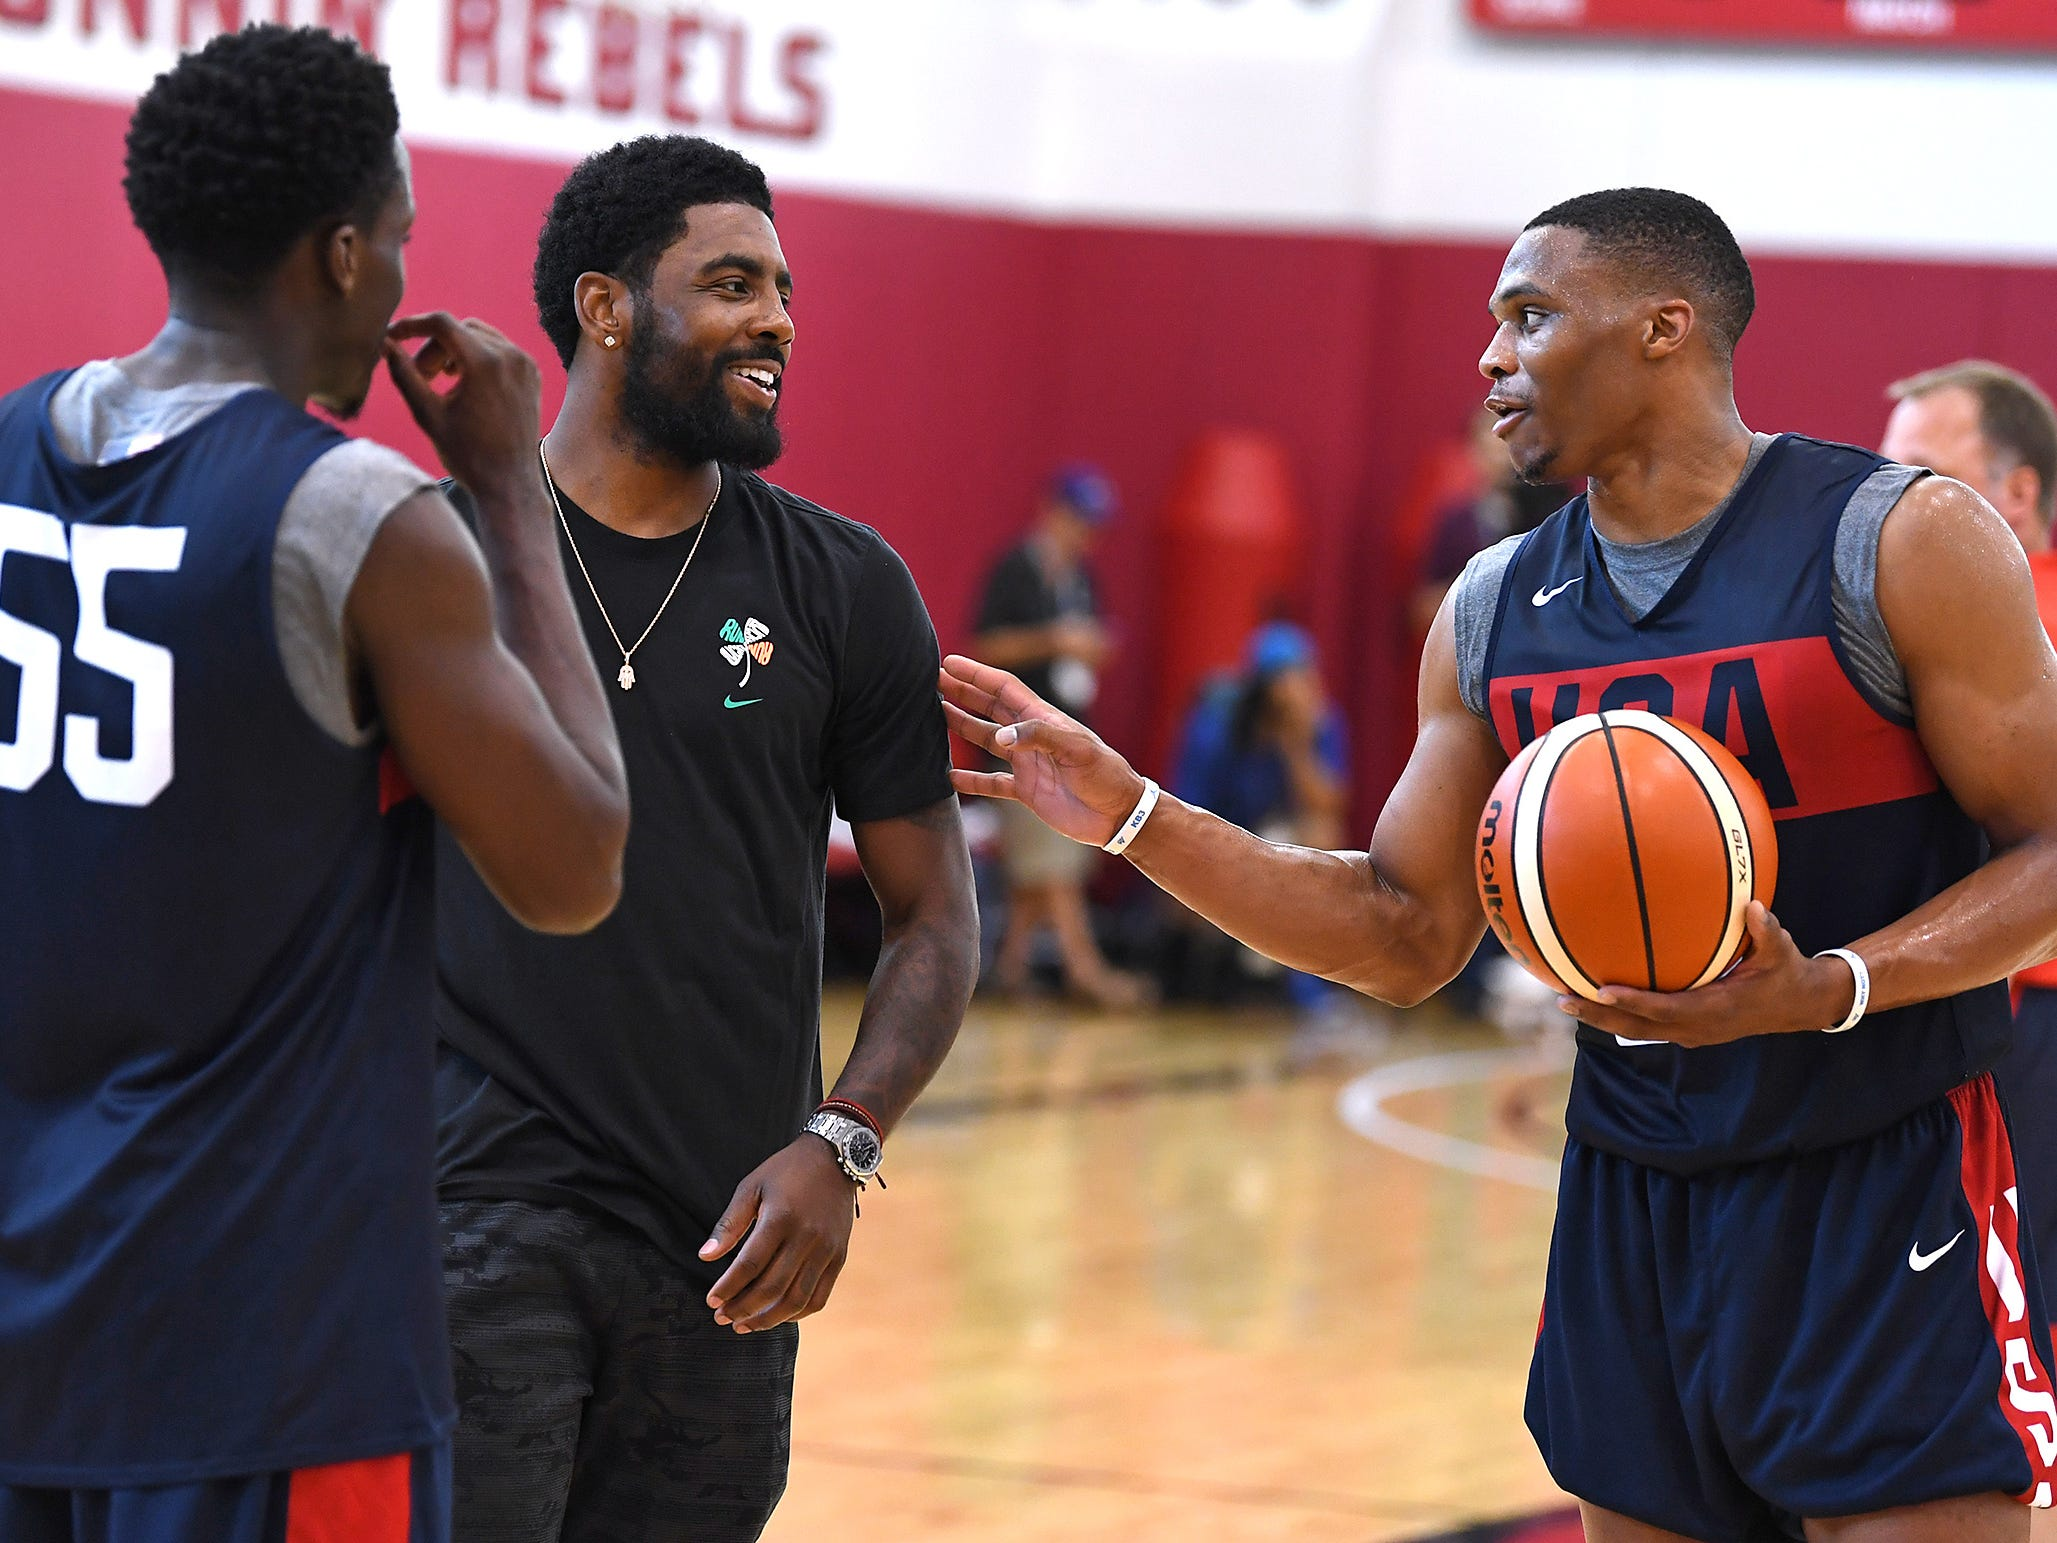 Russell Westbrook talks with Kyrie Irving and Victor Oladipo during the 2018 USA Basketball National Team Minicamp.